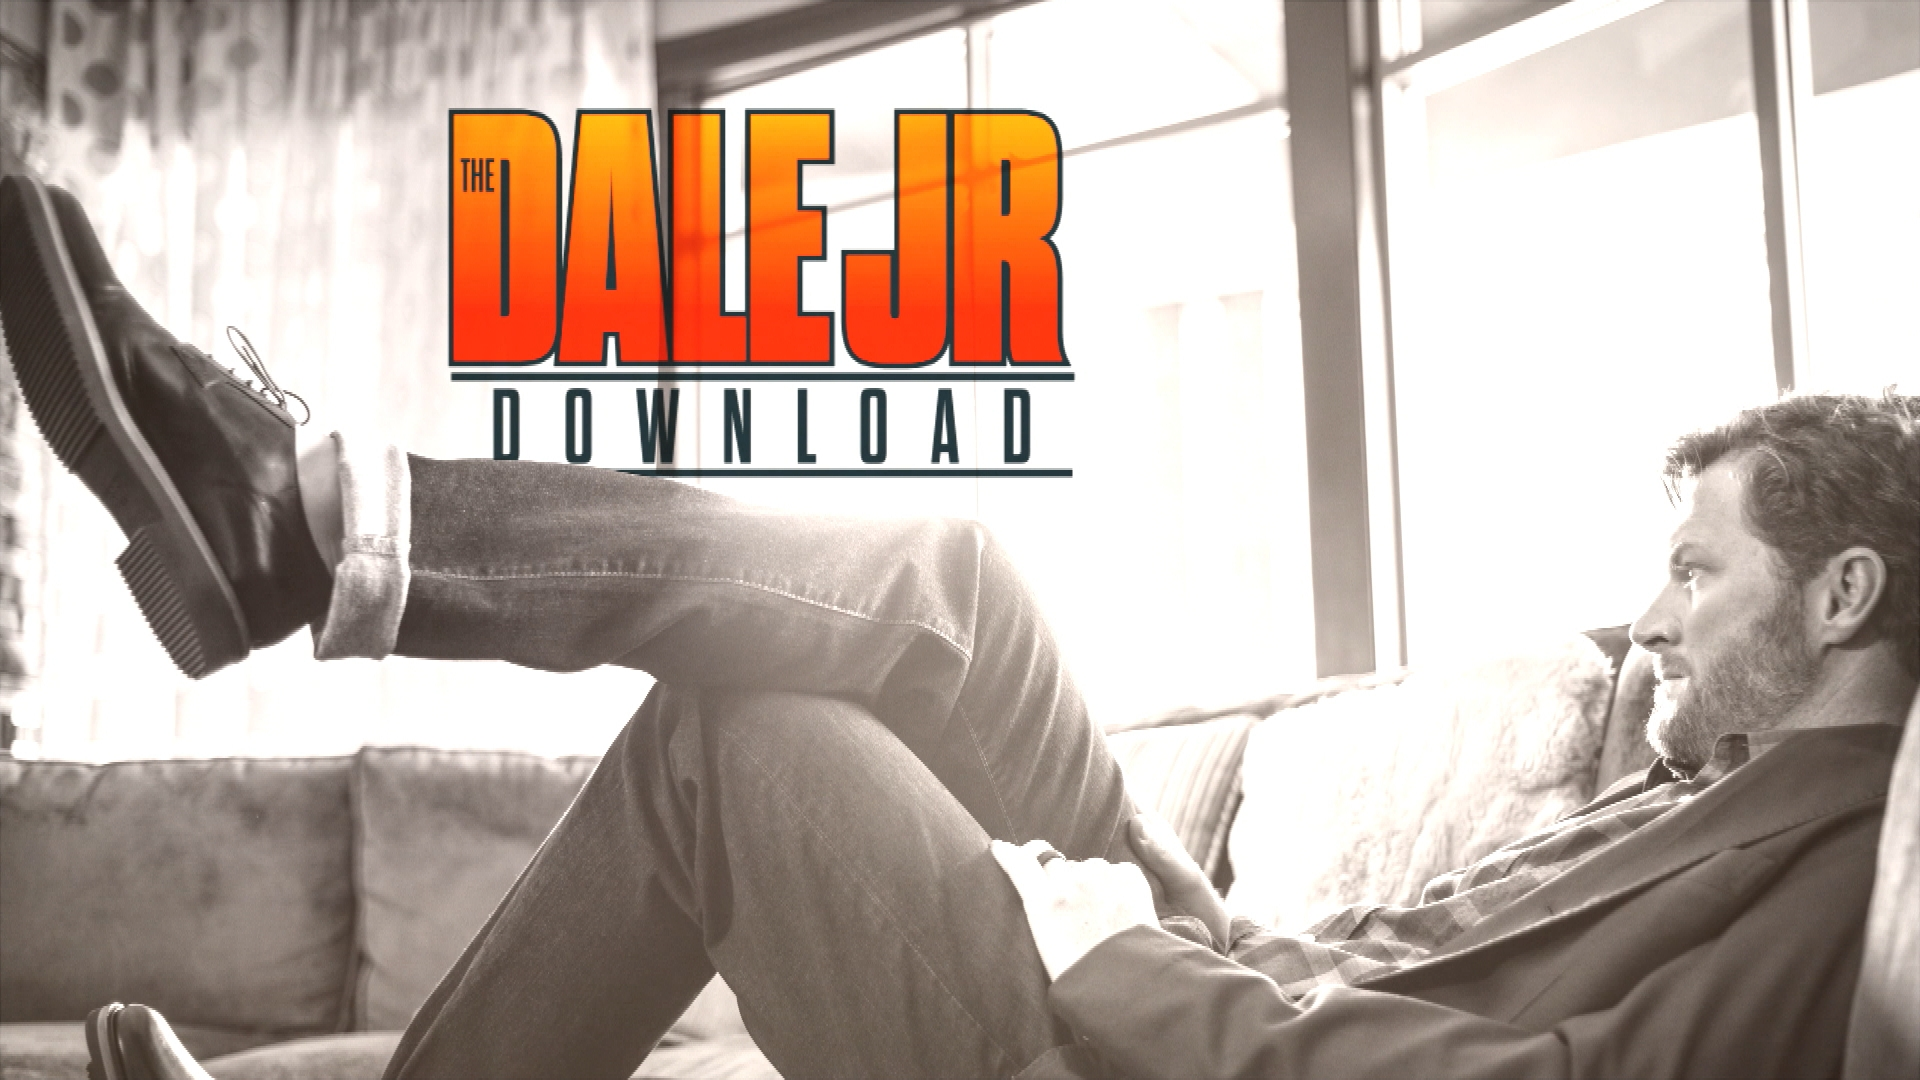 Dale Jr. Download: Reviewing controversies from Texas